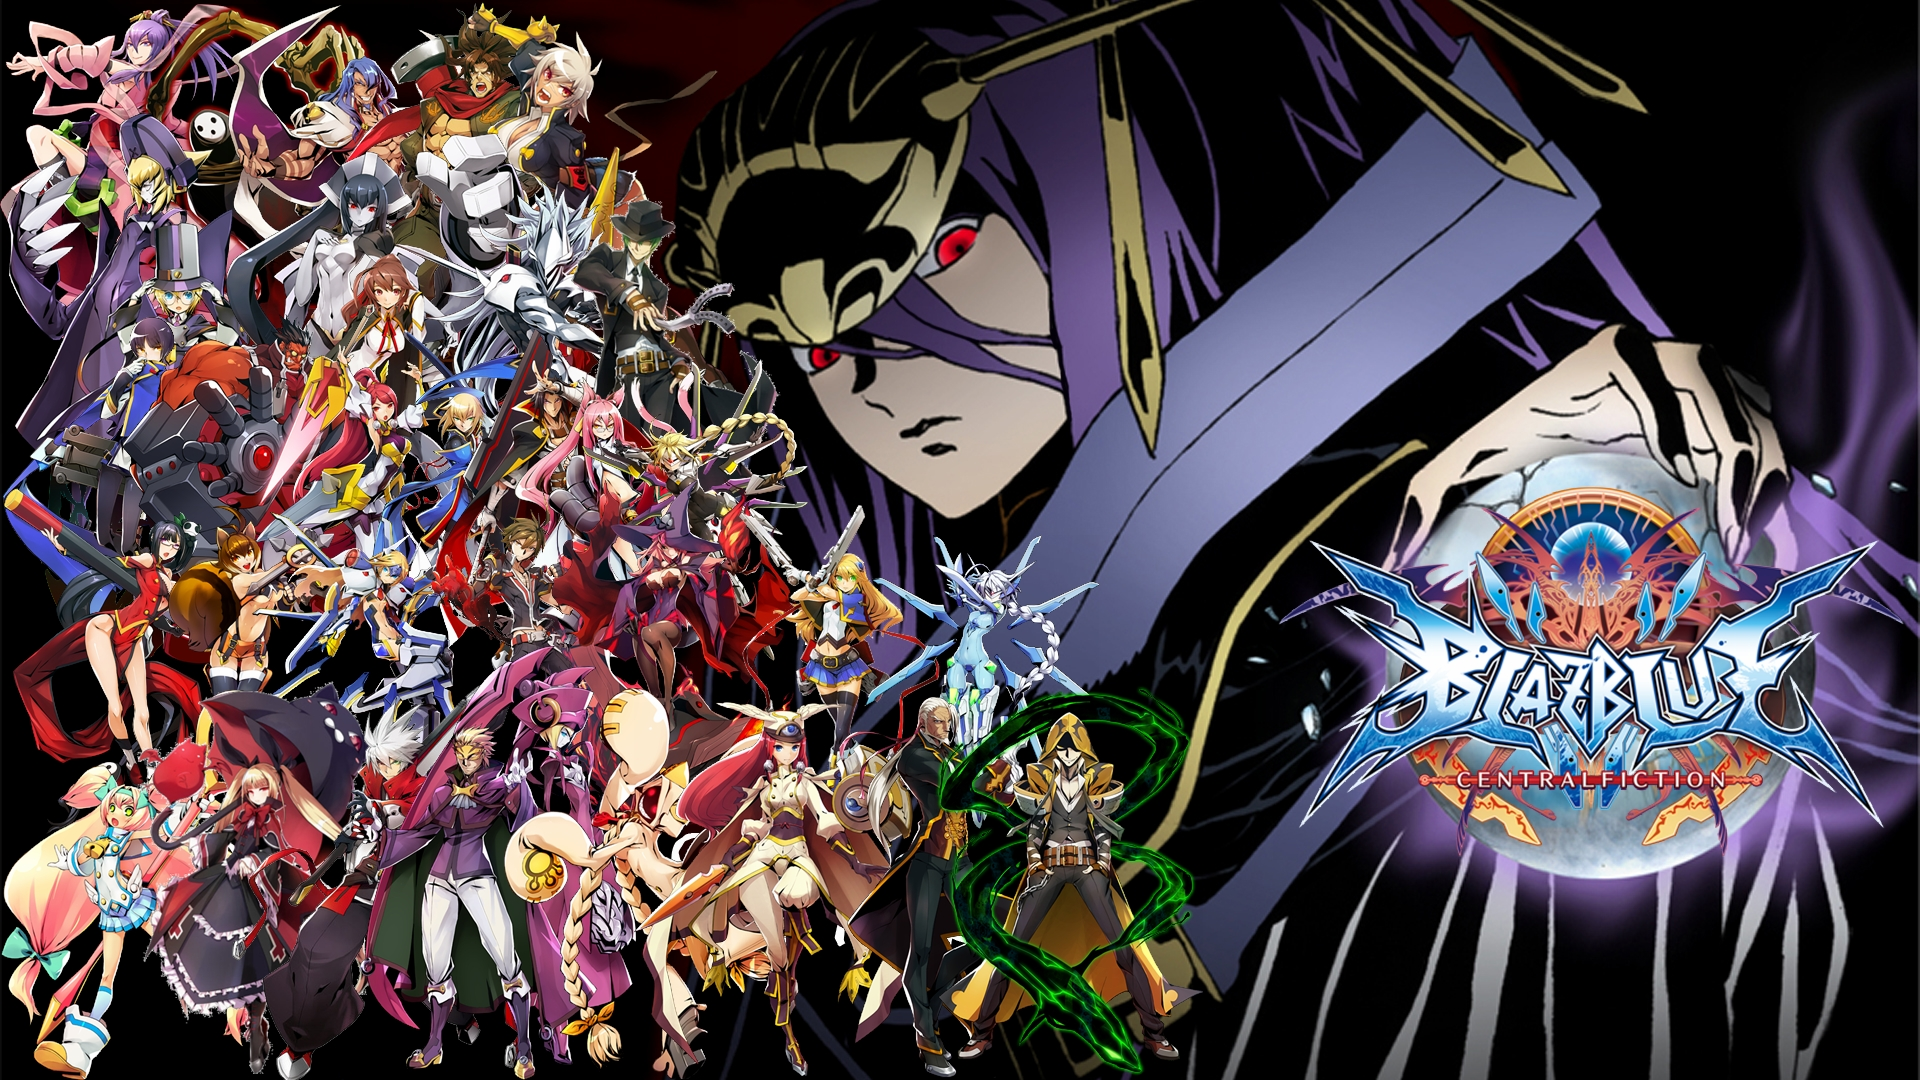 blazblue_centralfiction_wallpaper_by_yoink13-d9oi4qv